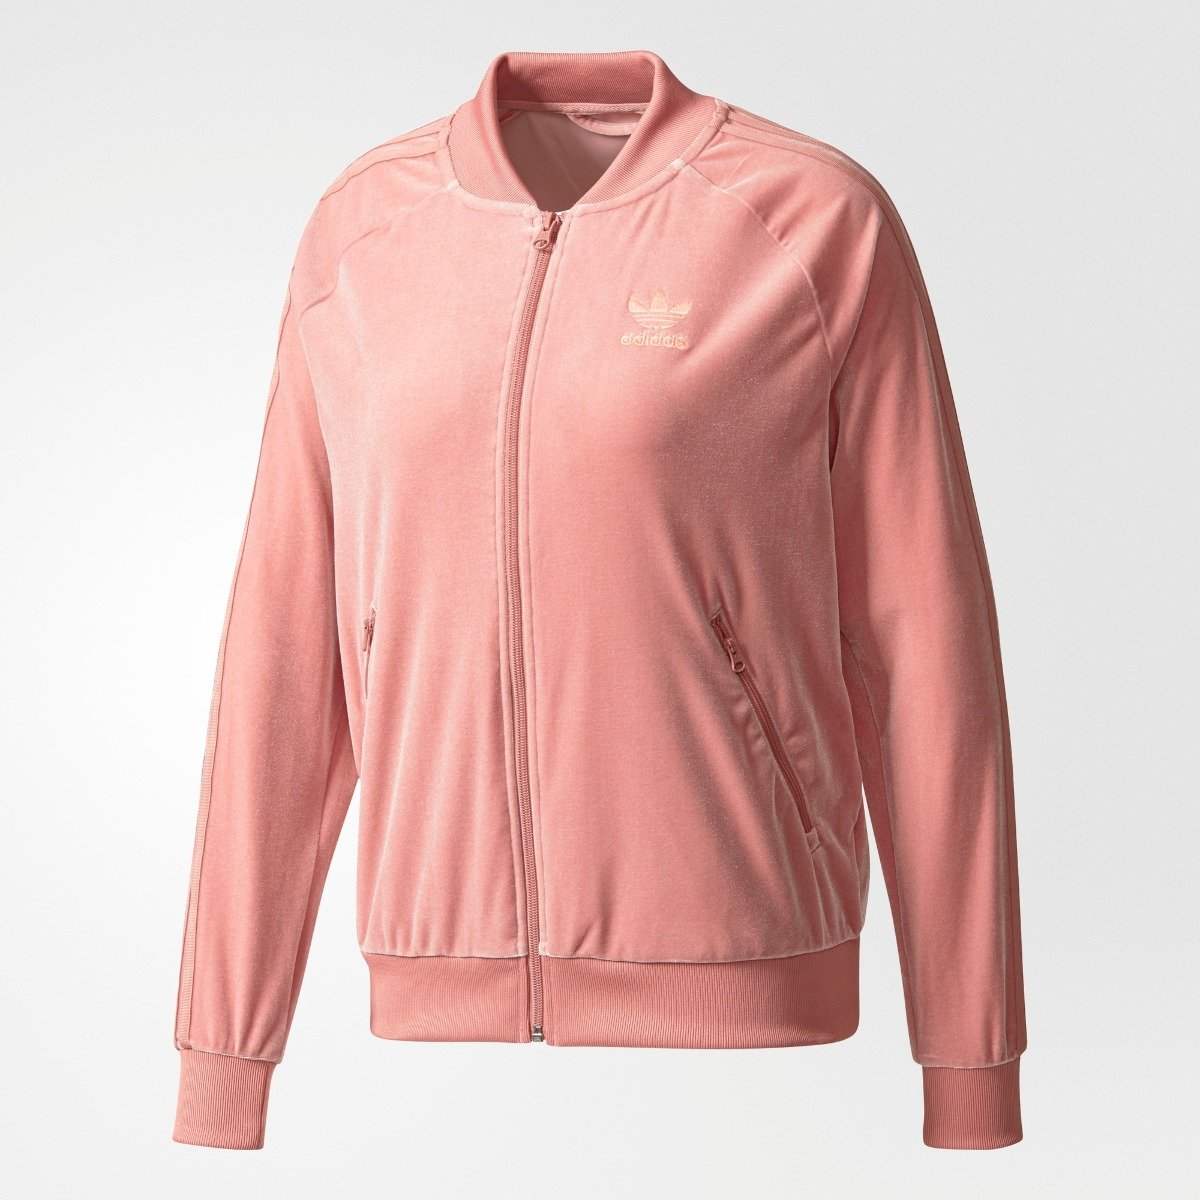 2db2bee9319c Women s adidas Originals Velvet Vibes SST Track Jacket Raw Pink